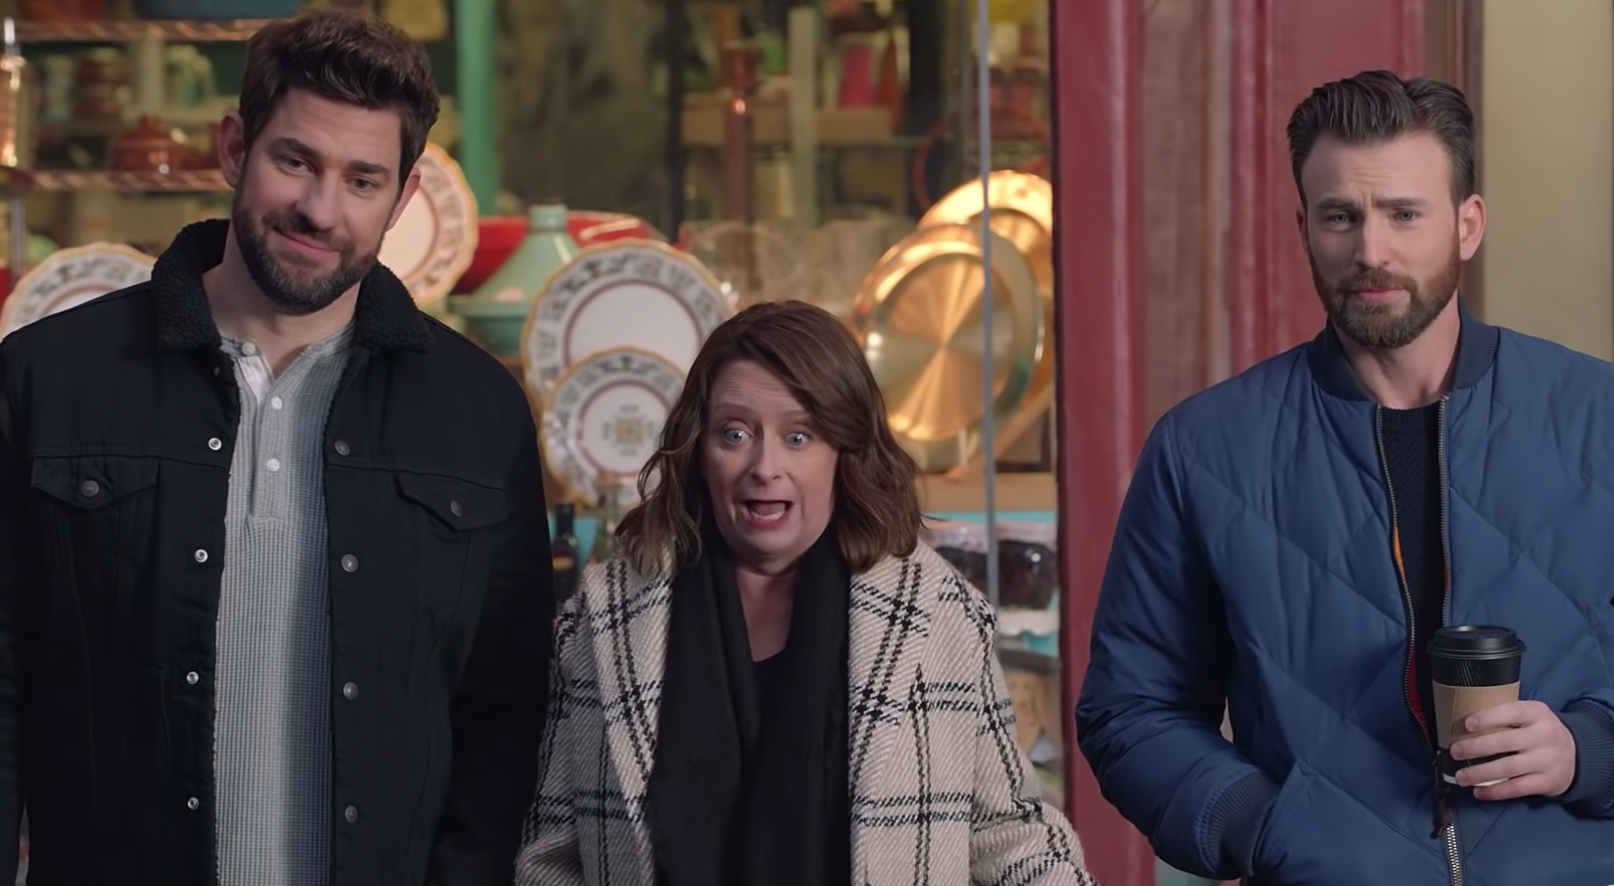 Chris Evans And John Krasinski Go Full Bostonian In Hyundai's Wicked Funny Super Bowl Commercial